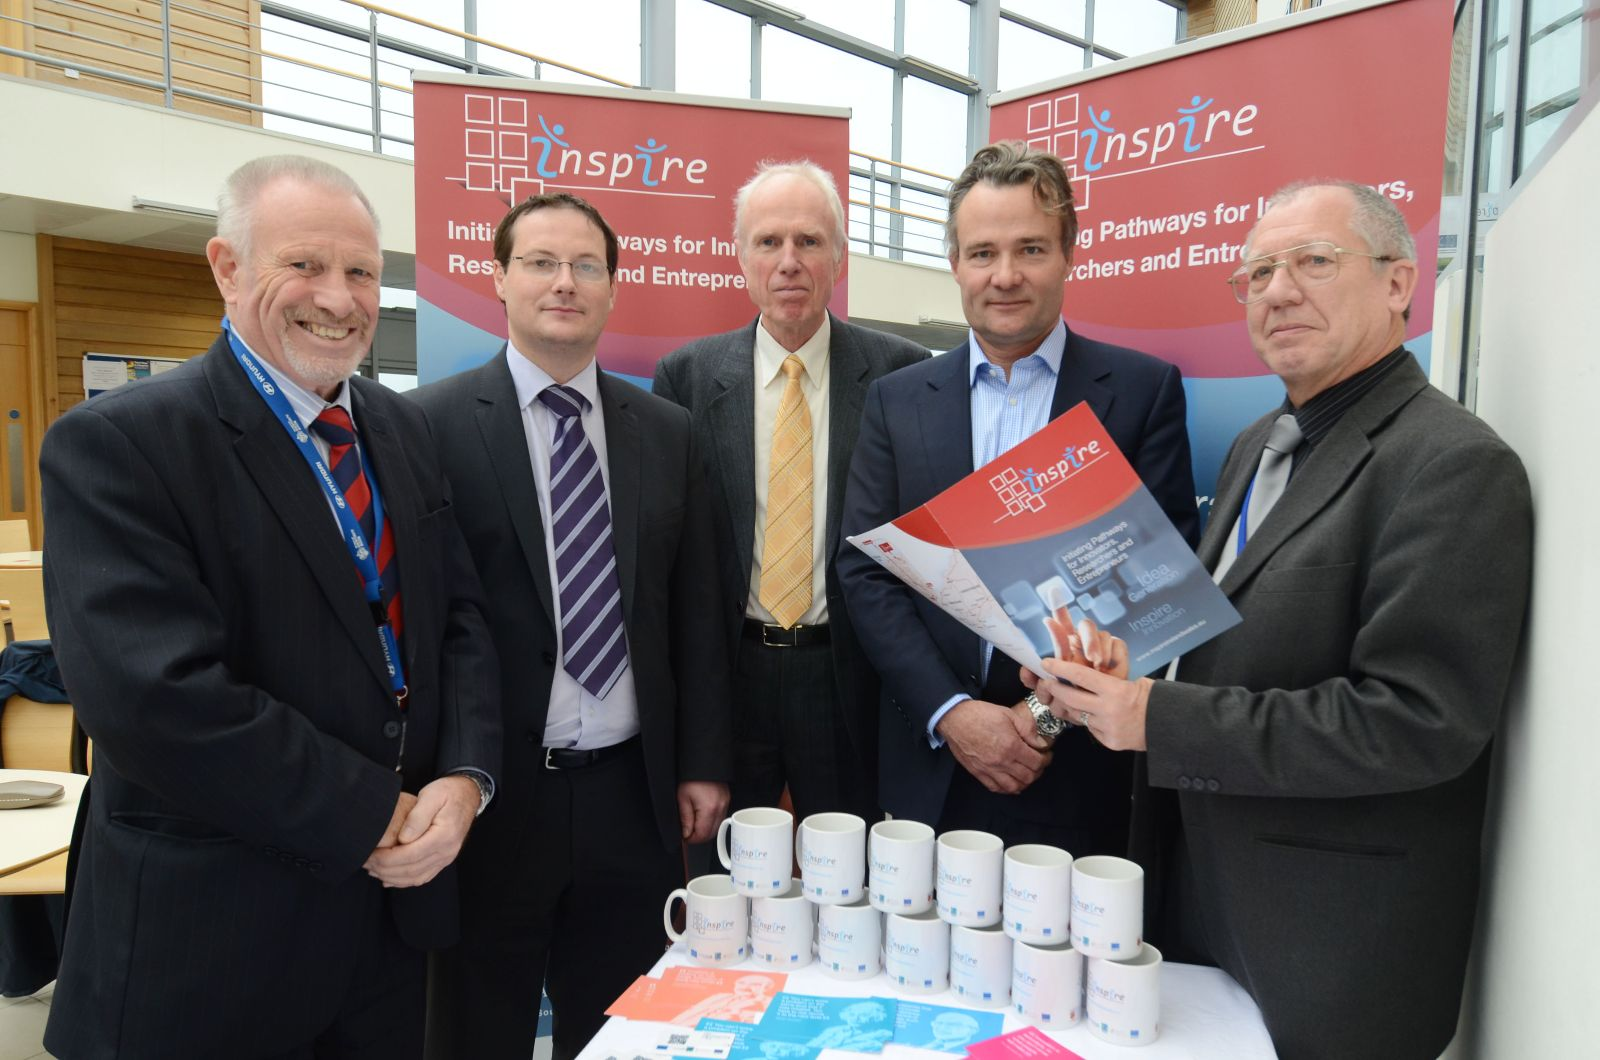 INSPIRE Launch at the Bridge Innovation Centre